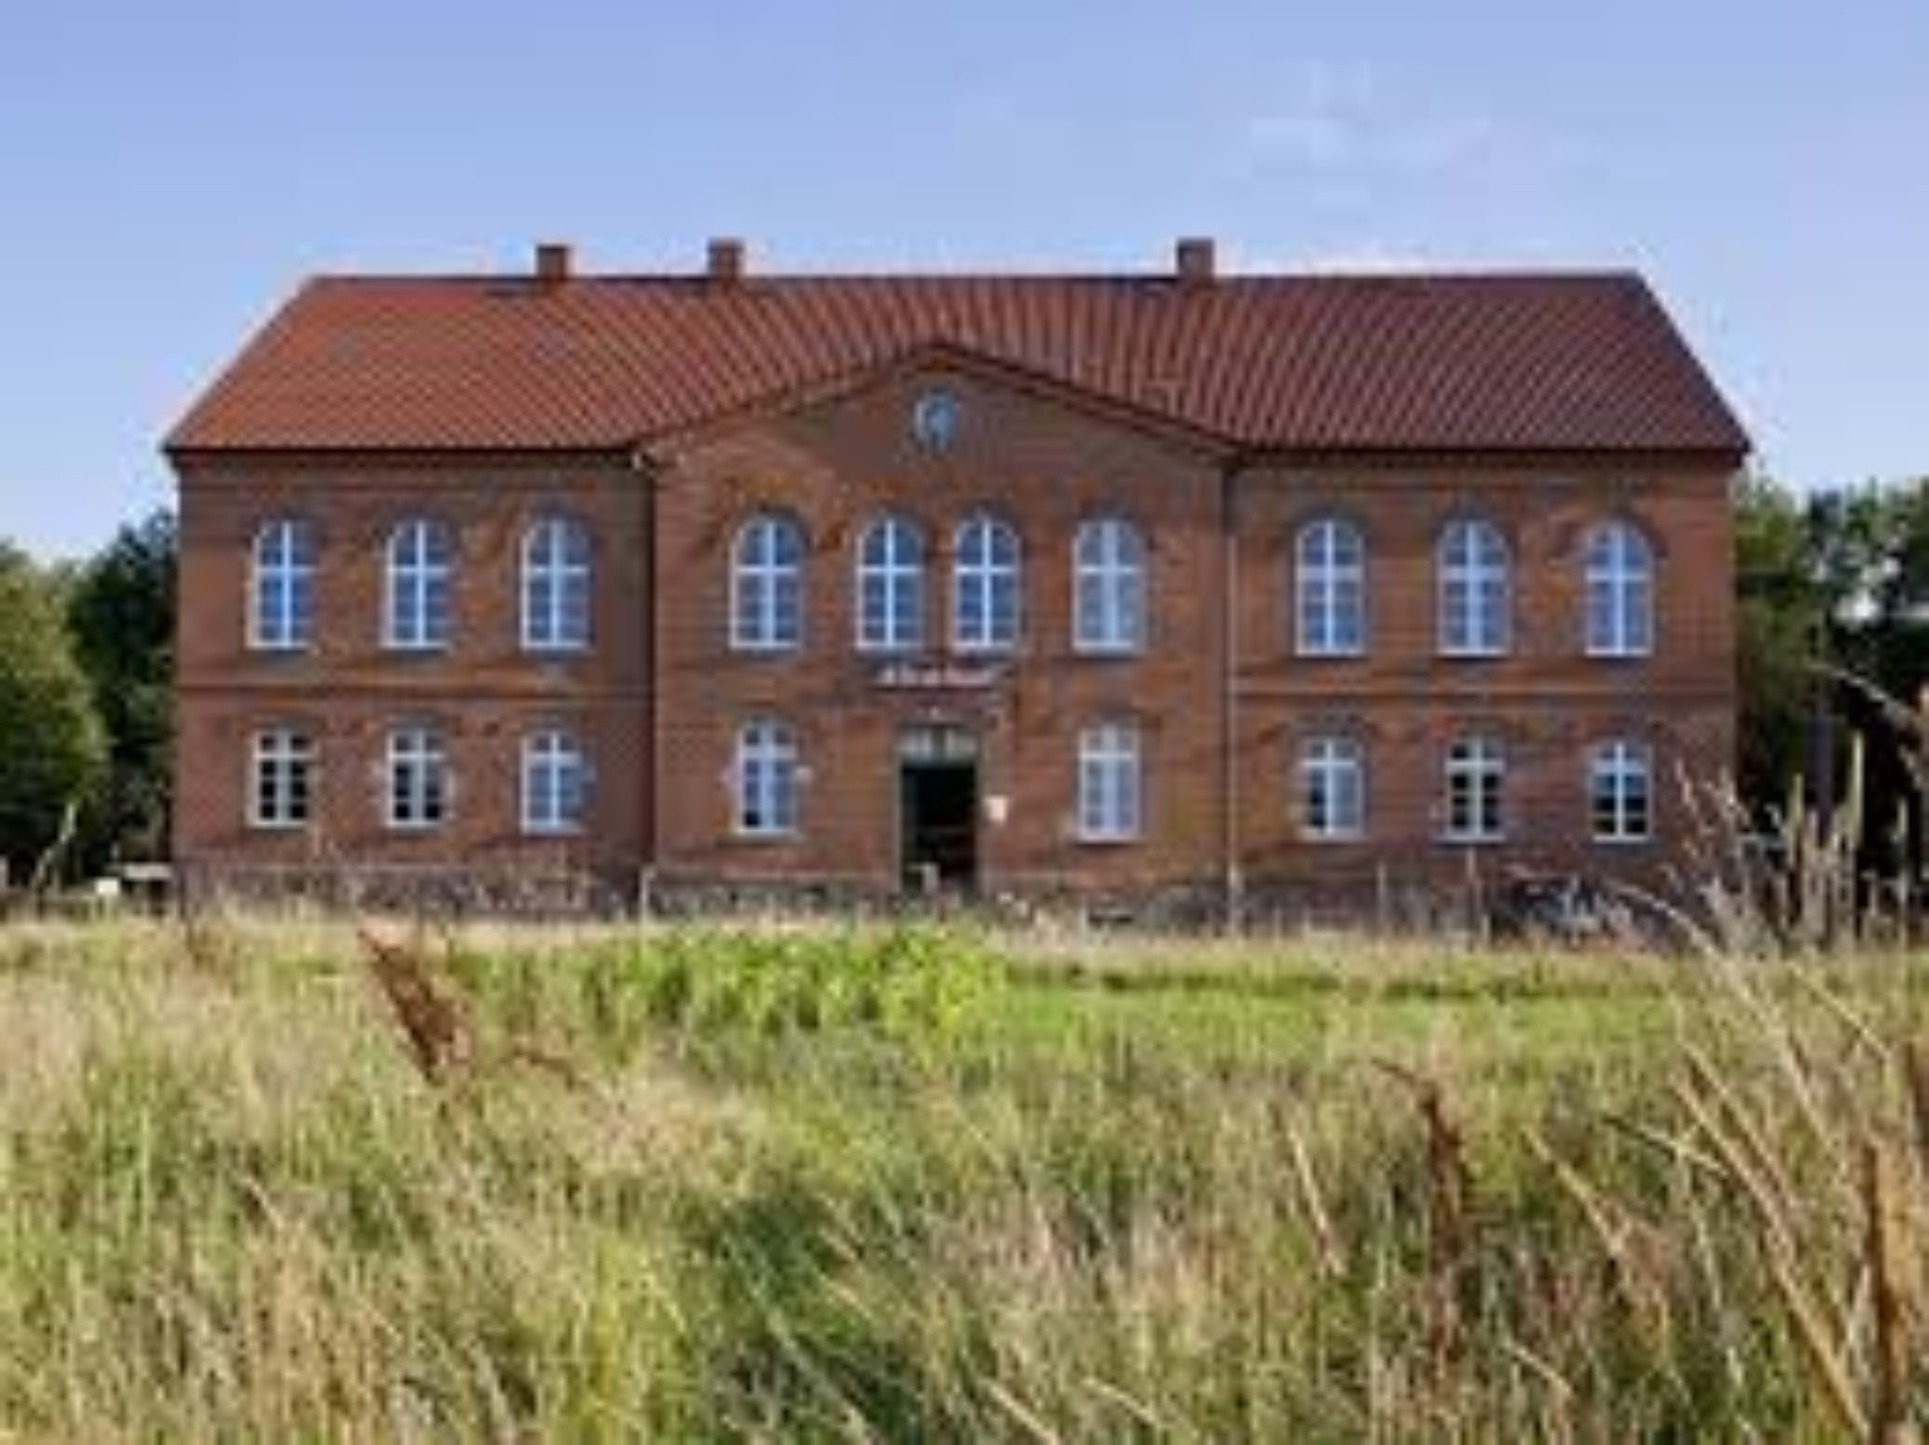 A large brick building with a grassy field at Kranich Hotel.